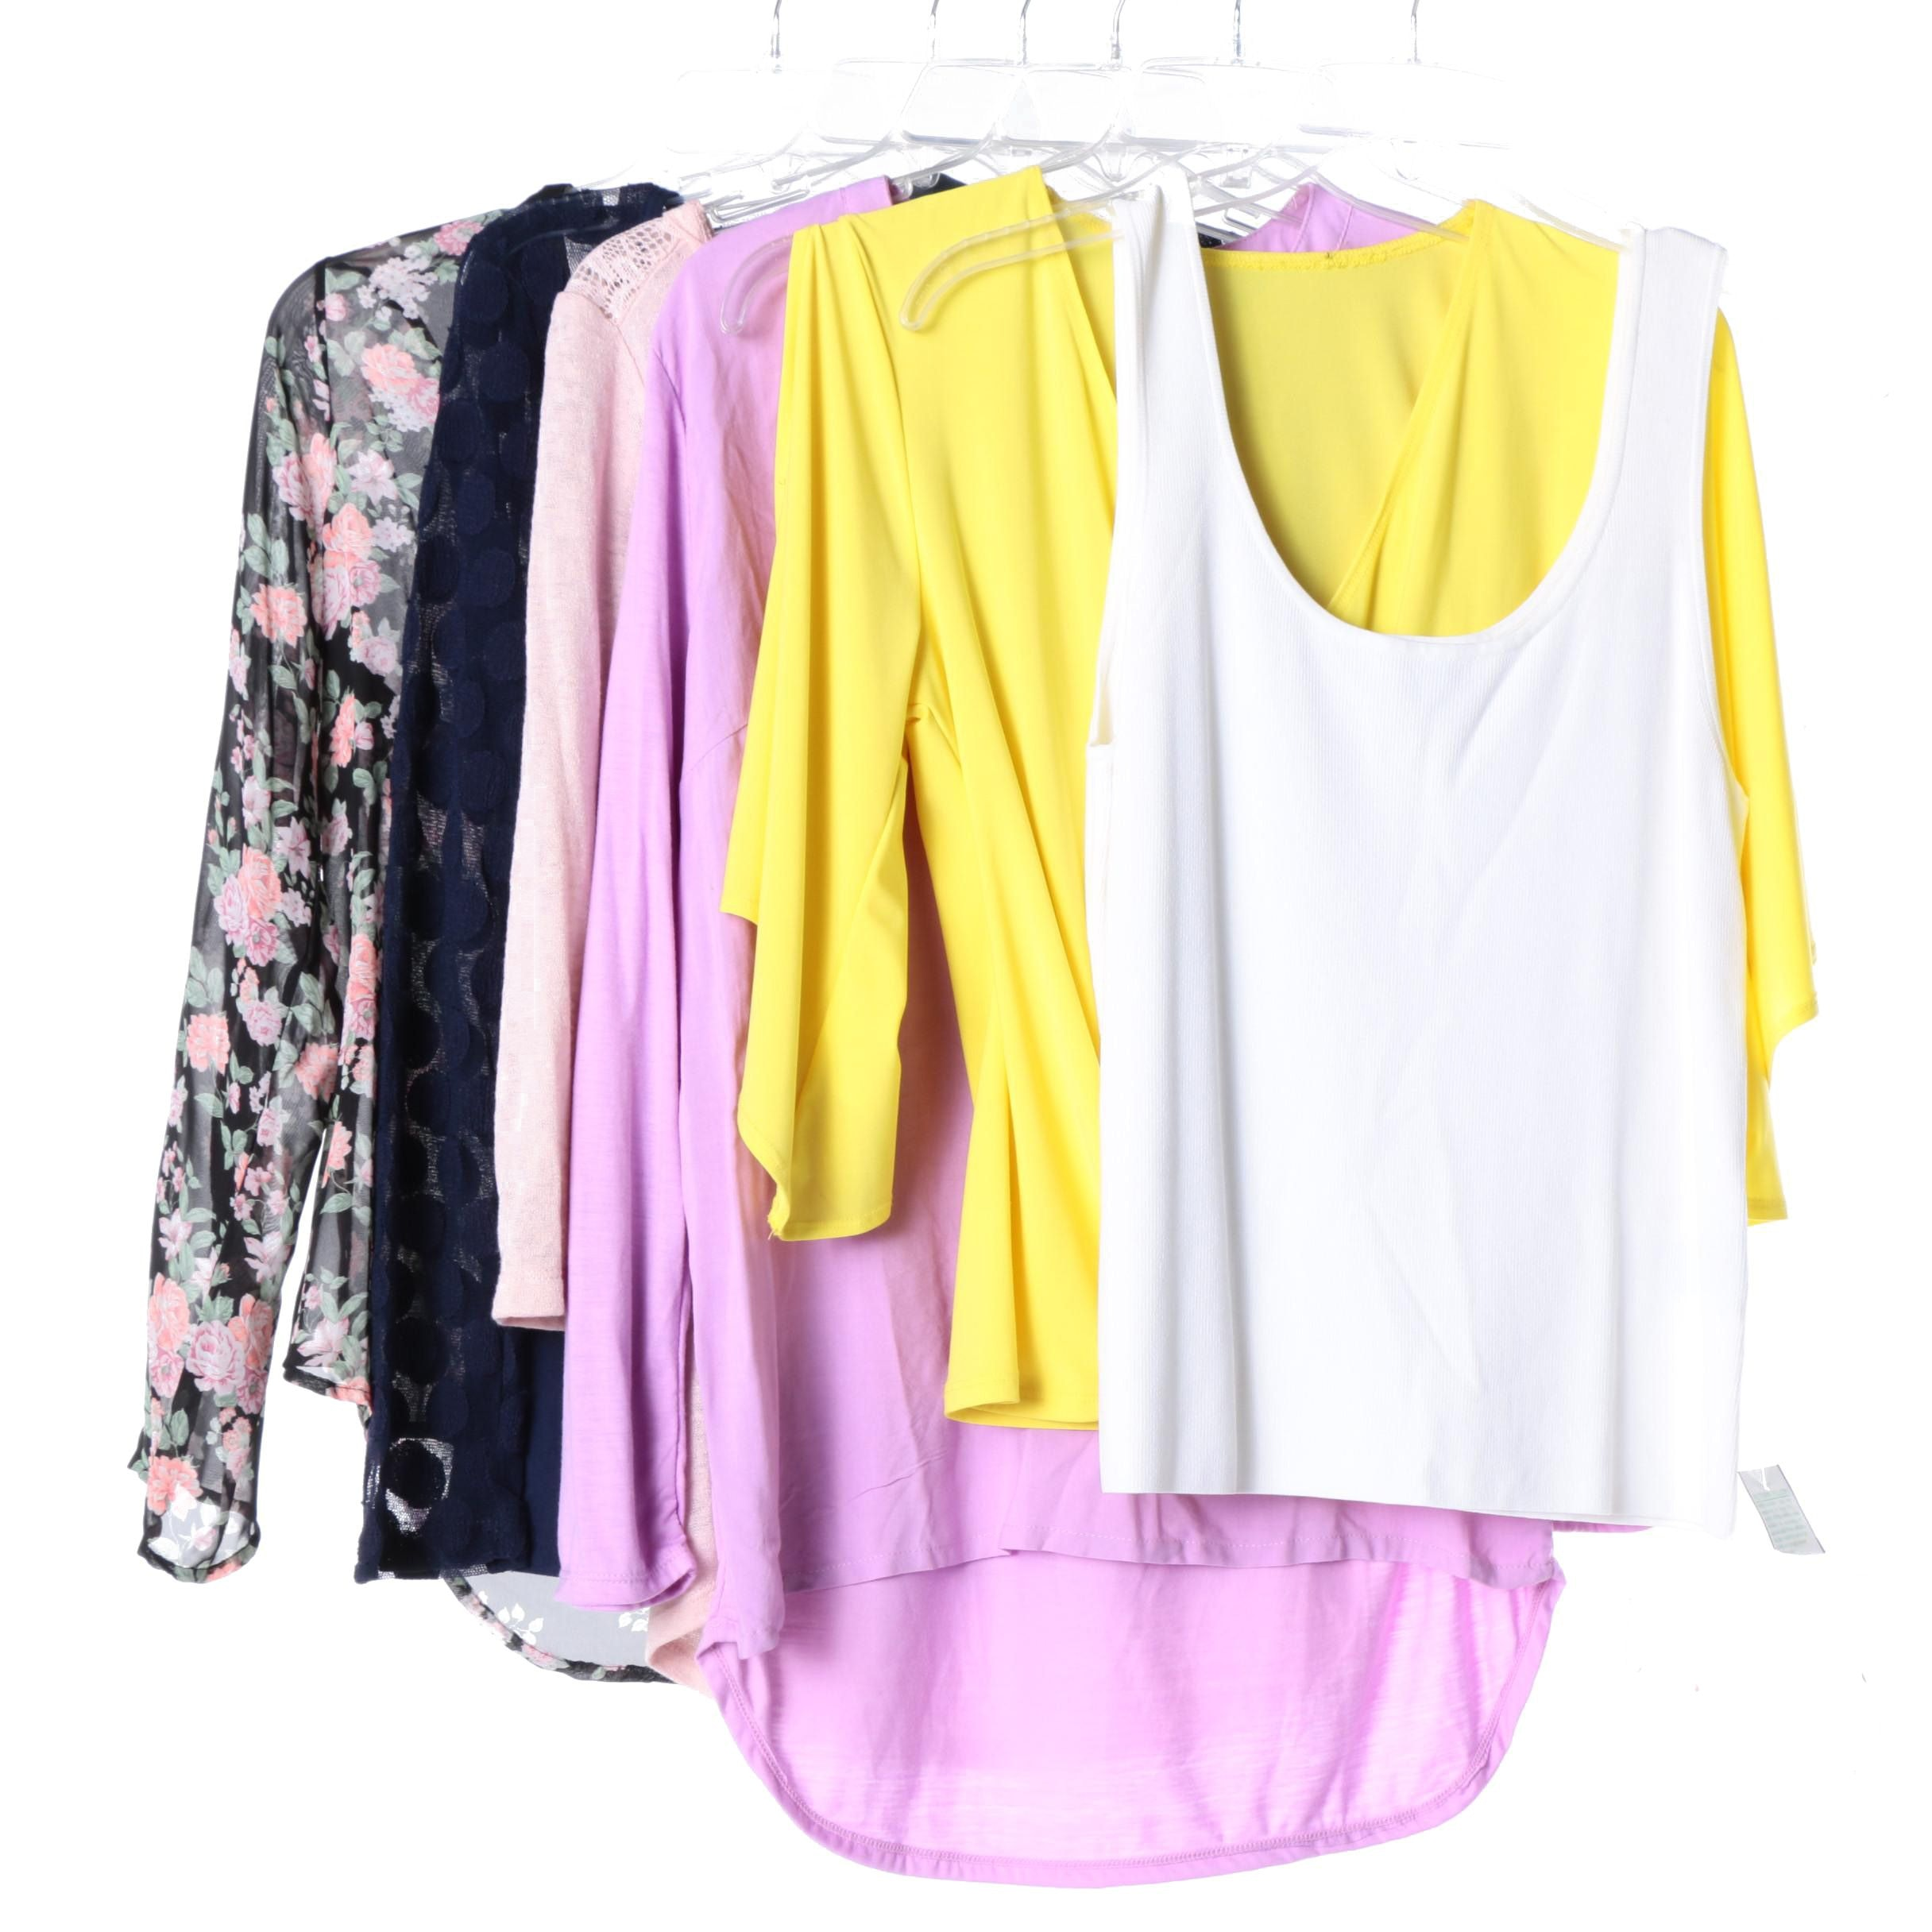 Women's Blouses and Tops